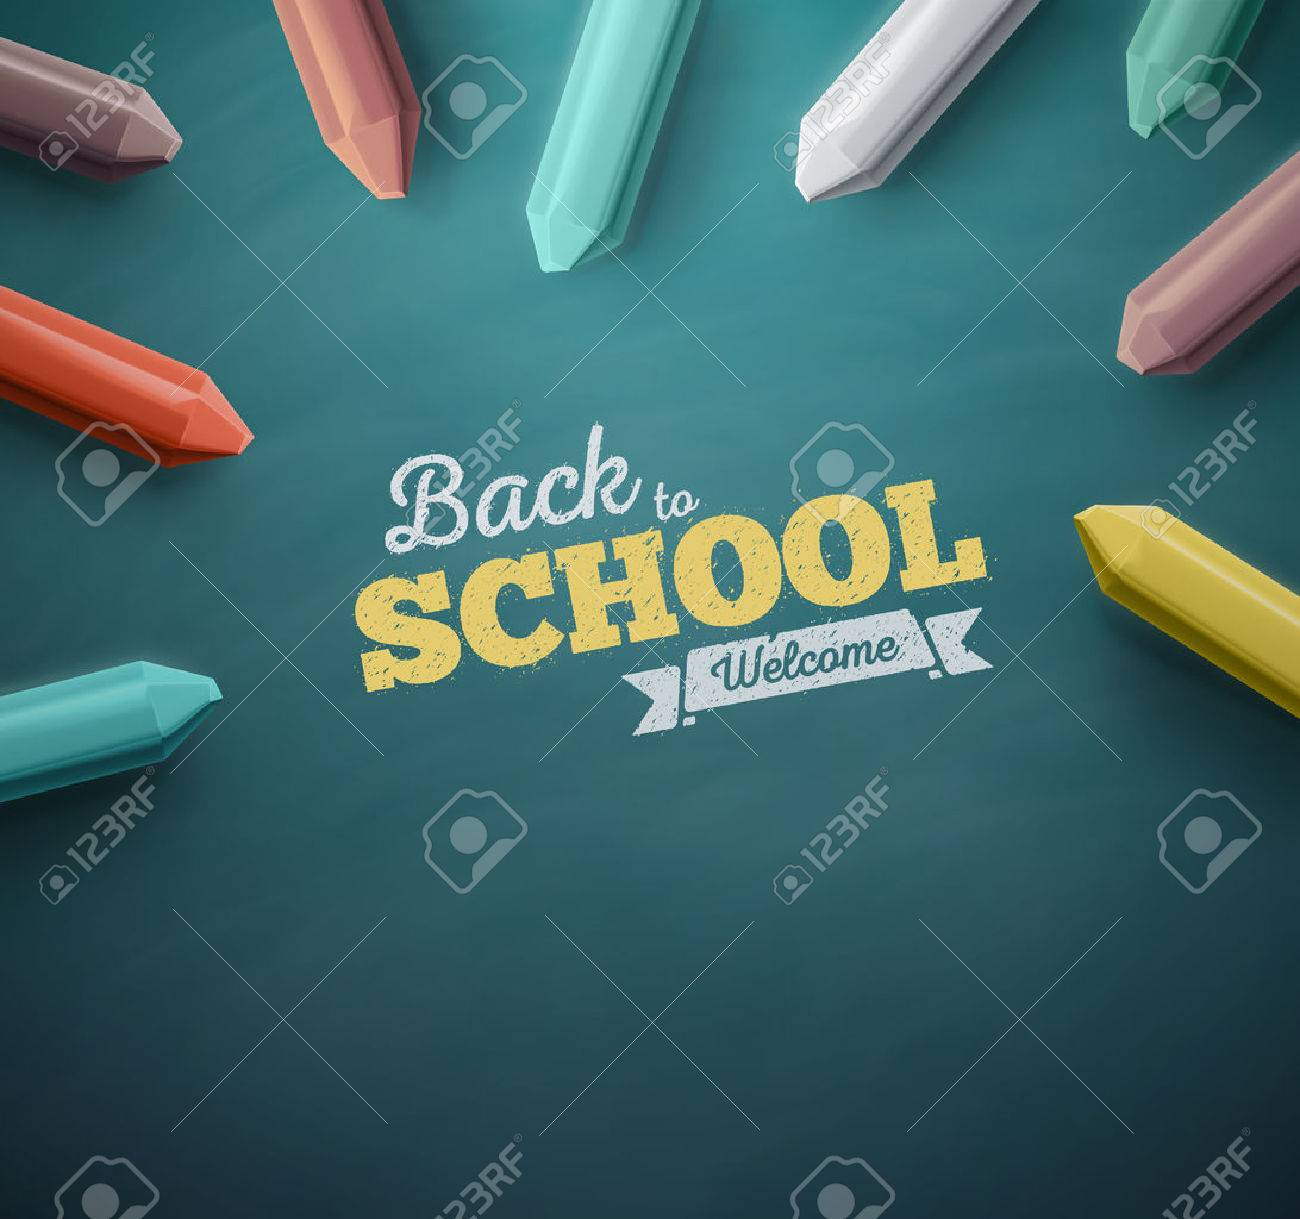 Welcome back to school, eps 10 Standard-Bild - 41579324